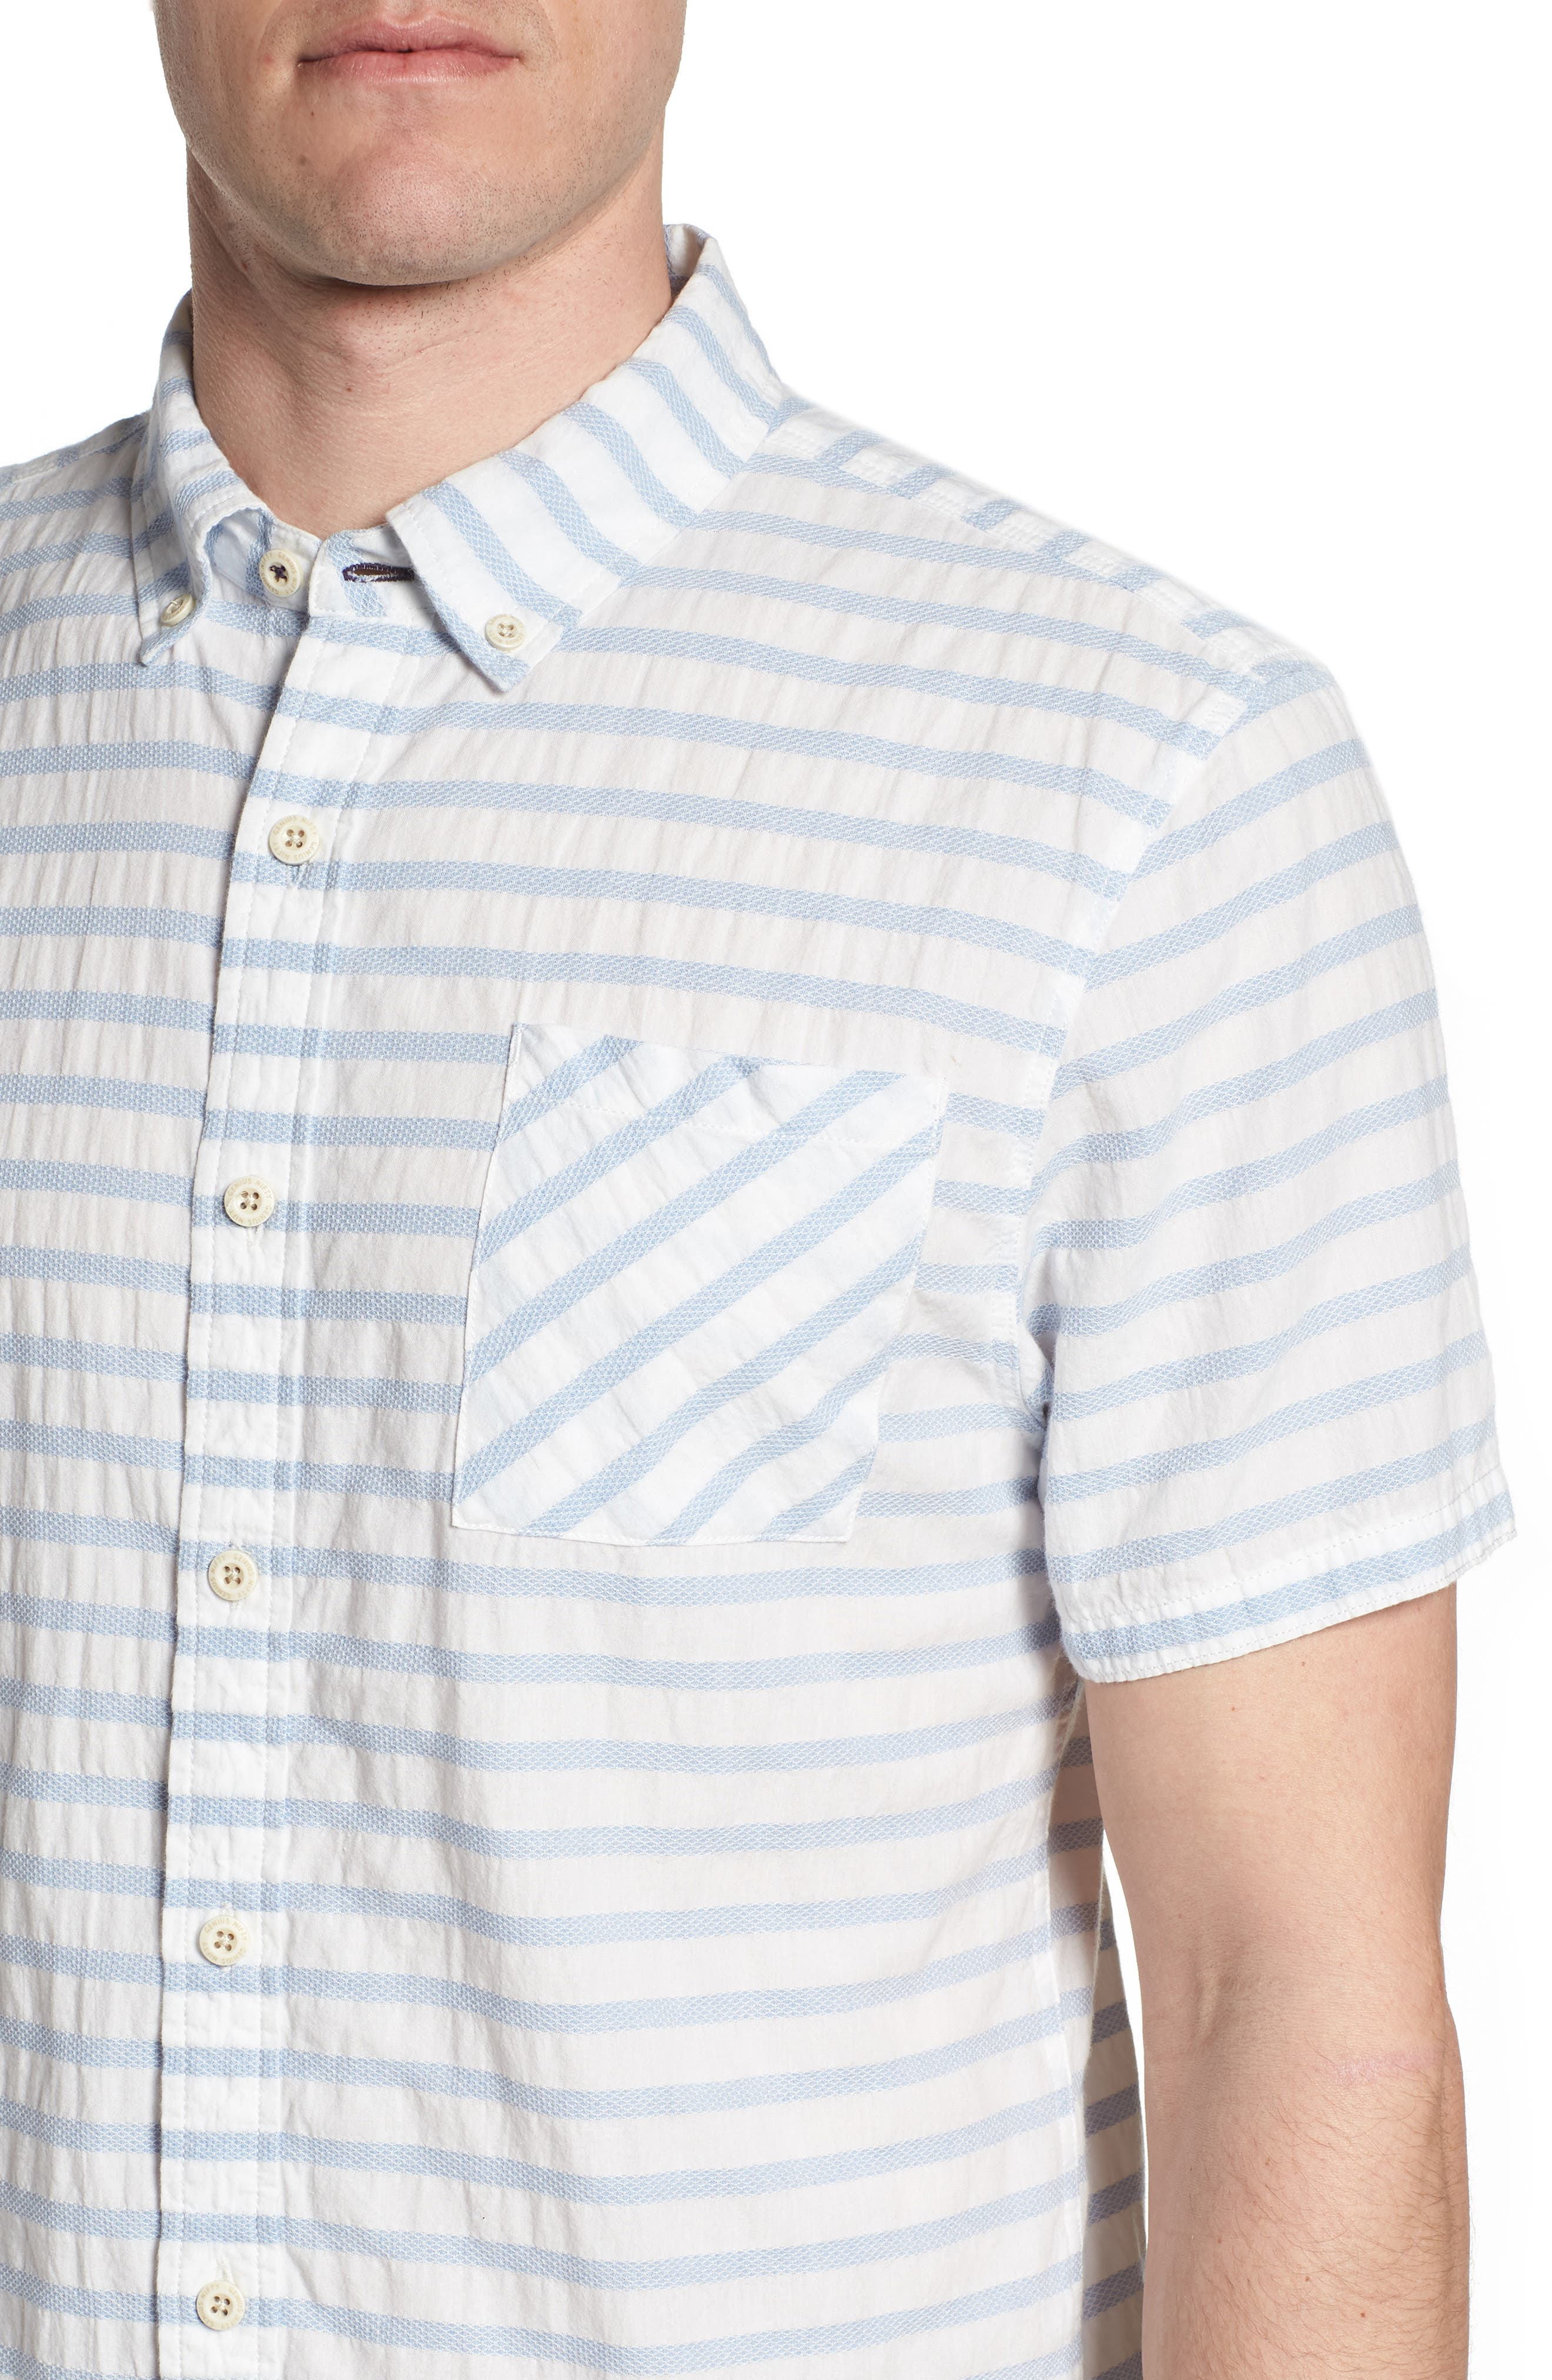 Truman Slim Fit Stripe Sport Shirt,                             Alternate thumbnail 4, color,                             WHITE/ BLUE